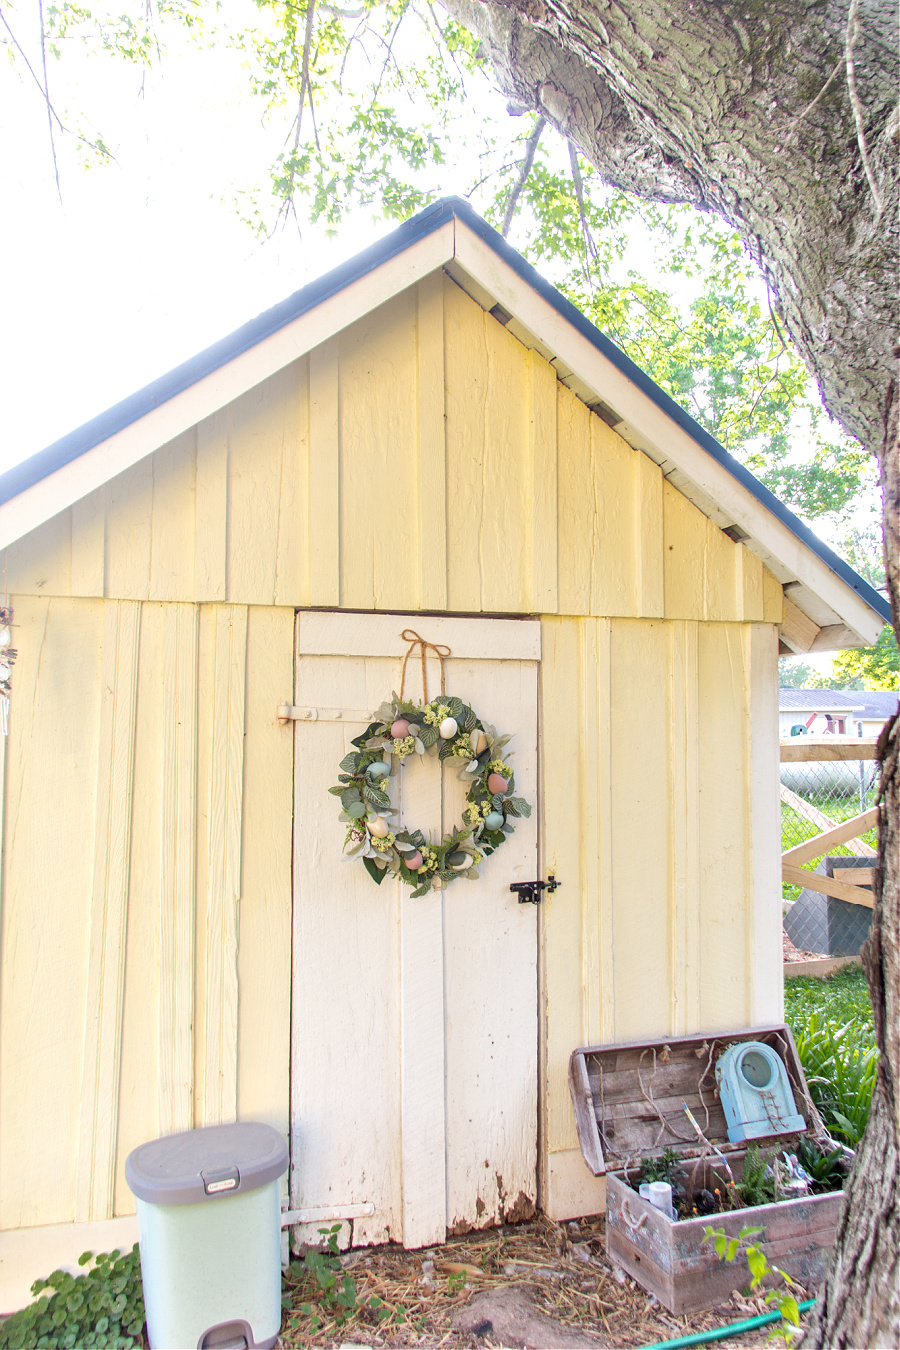 A yellow and white garden shed with a blue roof that has been turned into a chicken coop. There is a handmade egg wreath hanging on the door.